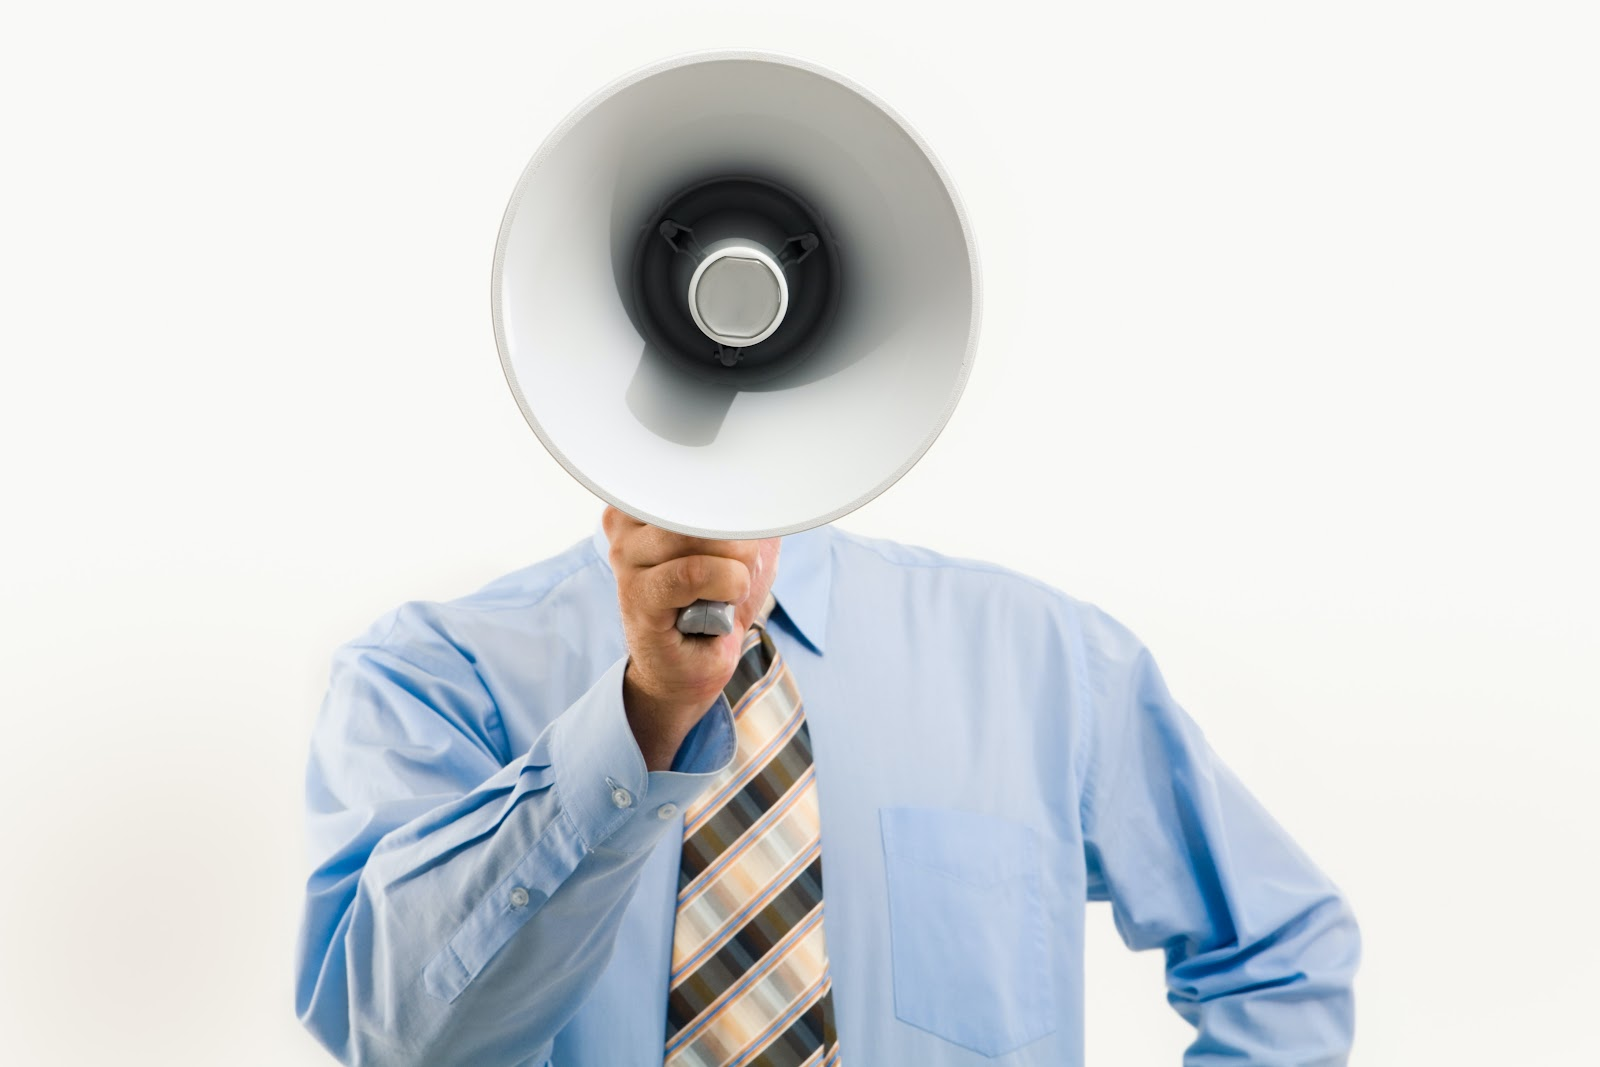 A business person holding a megaphone that obscures their face.